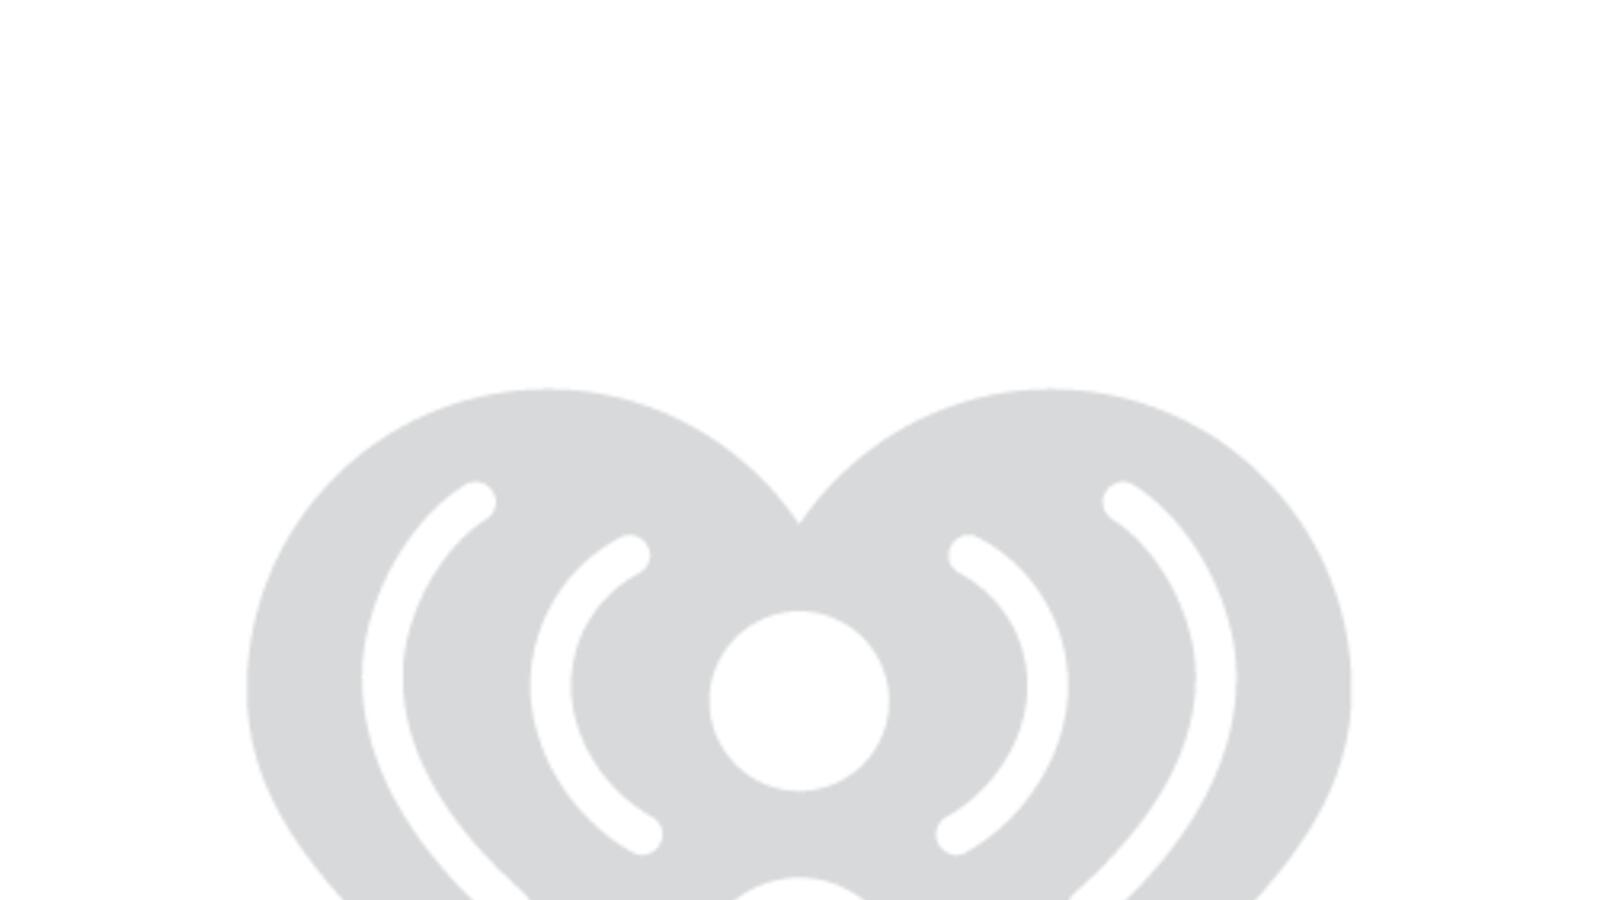 RTA Car-Free Day Sept 22nd